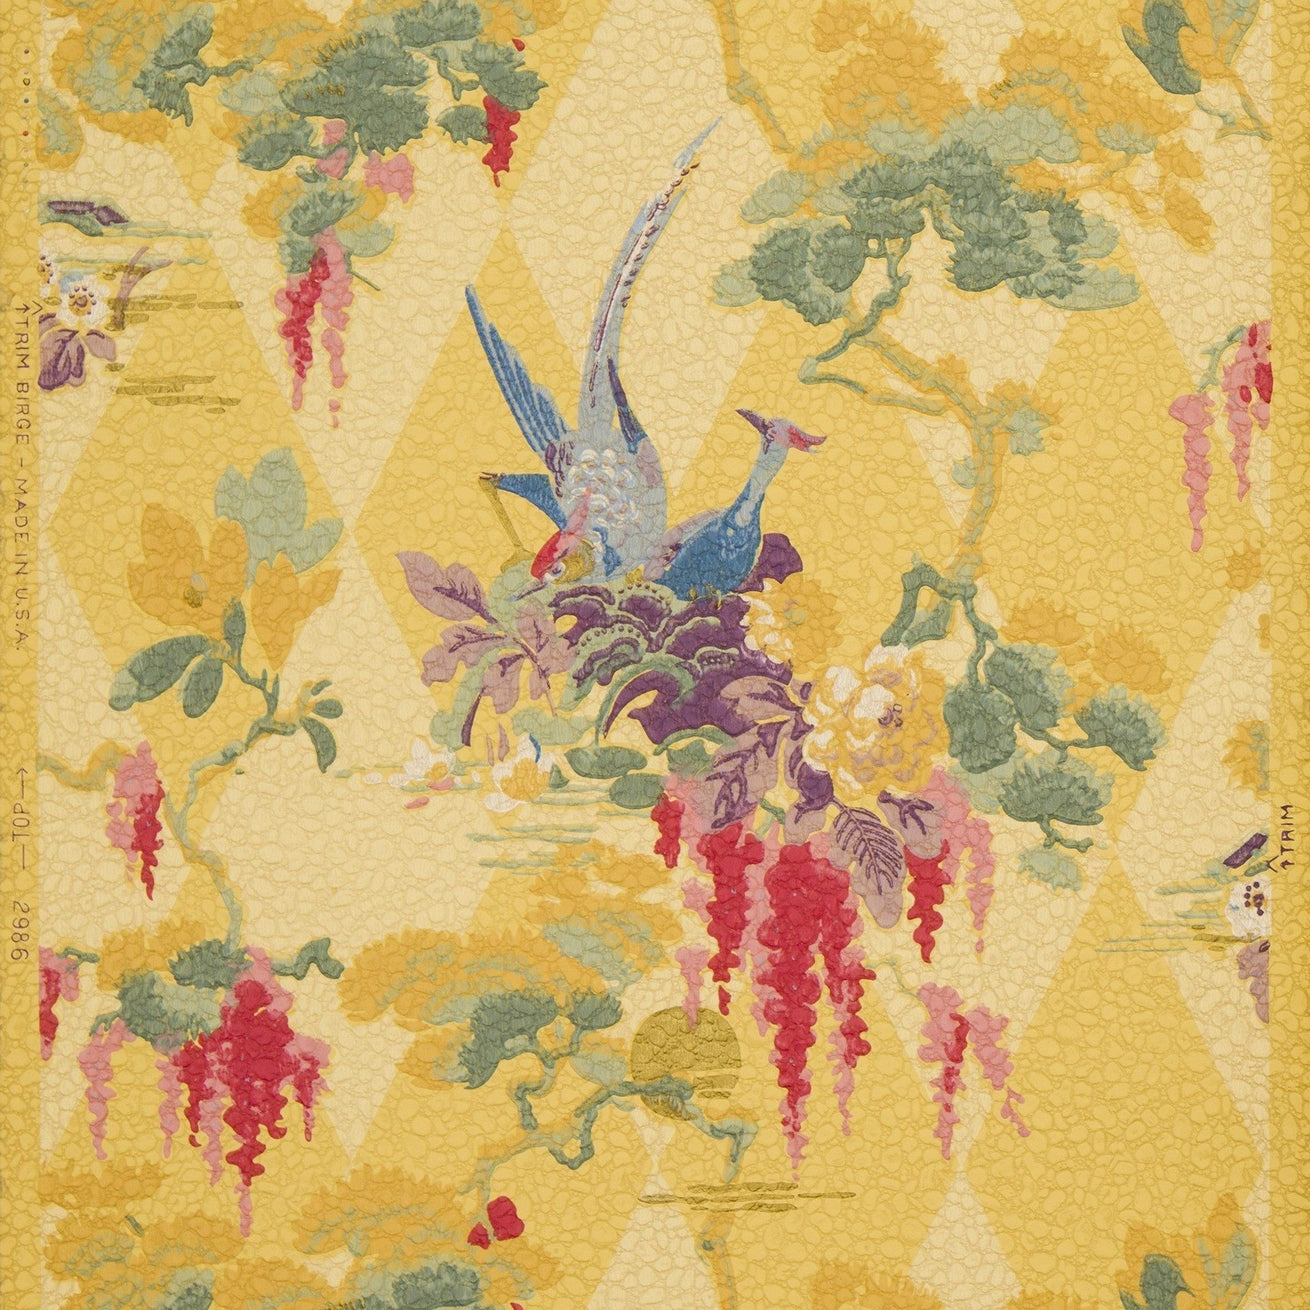 Exotic Birds/Flowers, Gilt Sun, Harlequin Motif - Antique Wallpaper Remnant